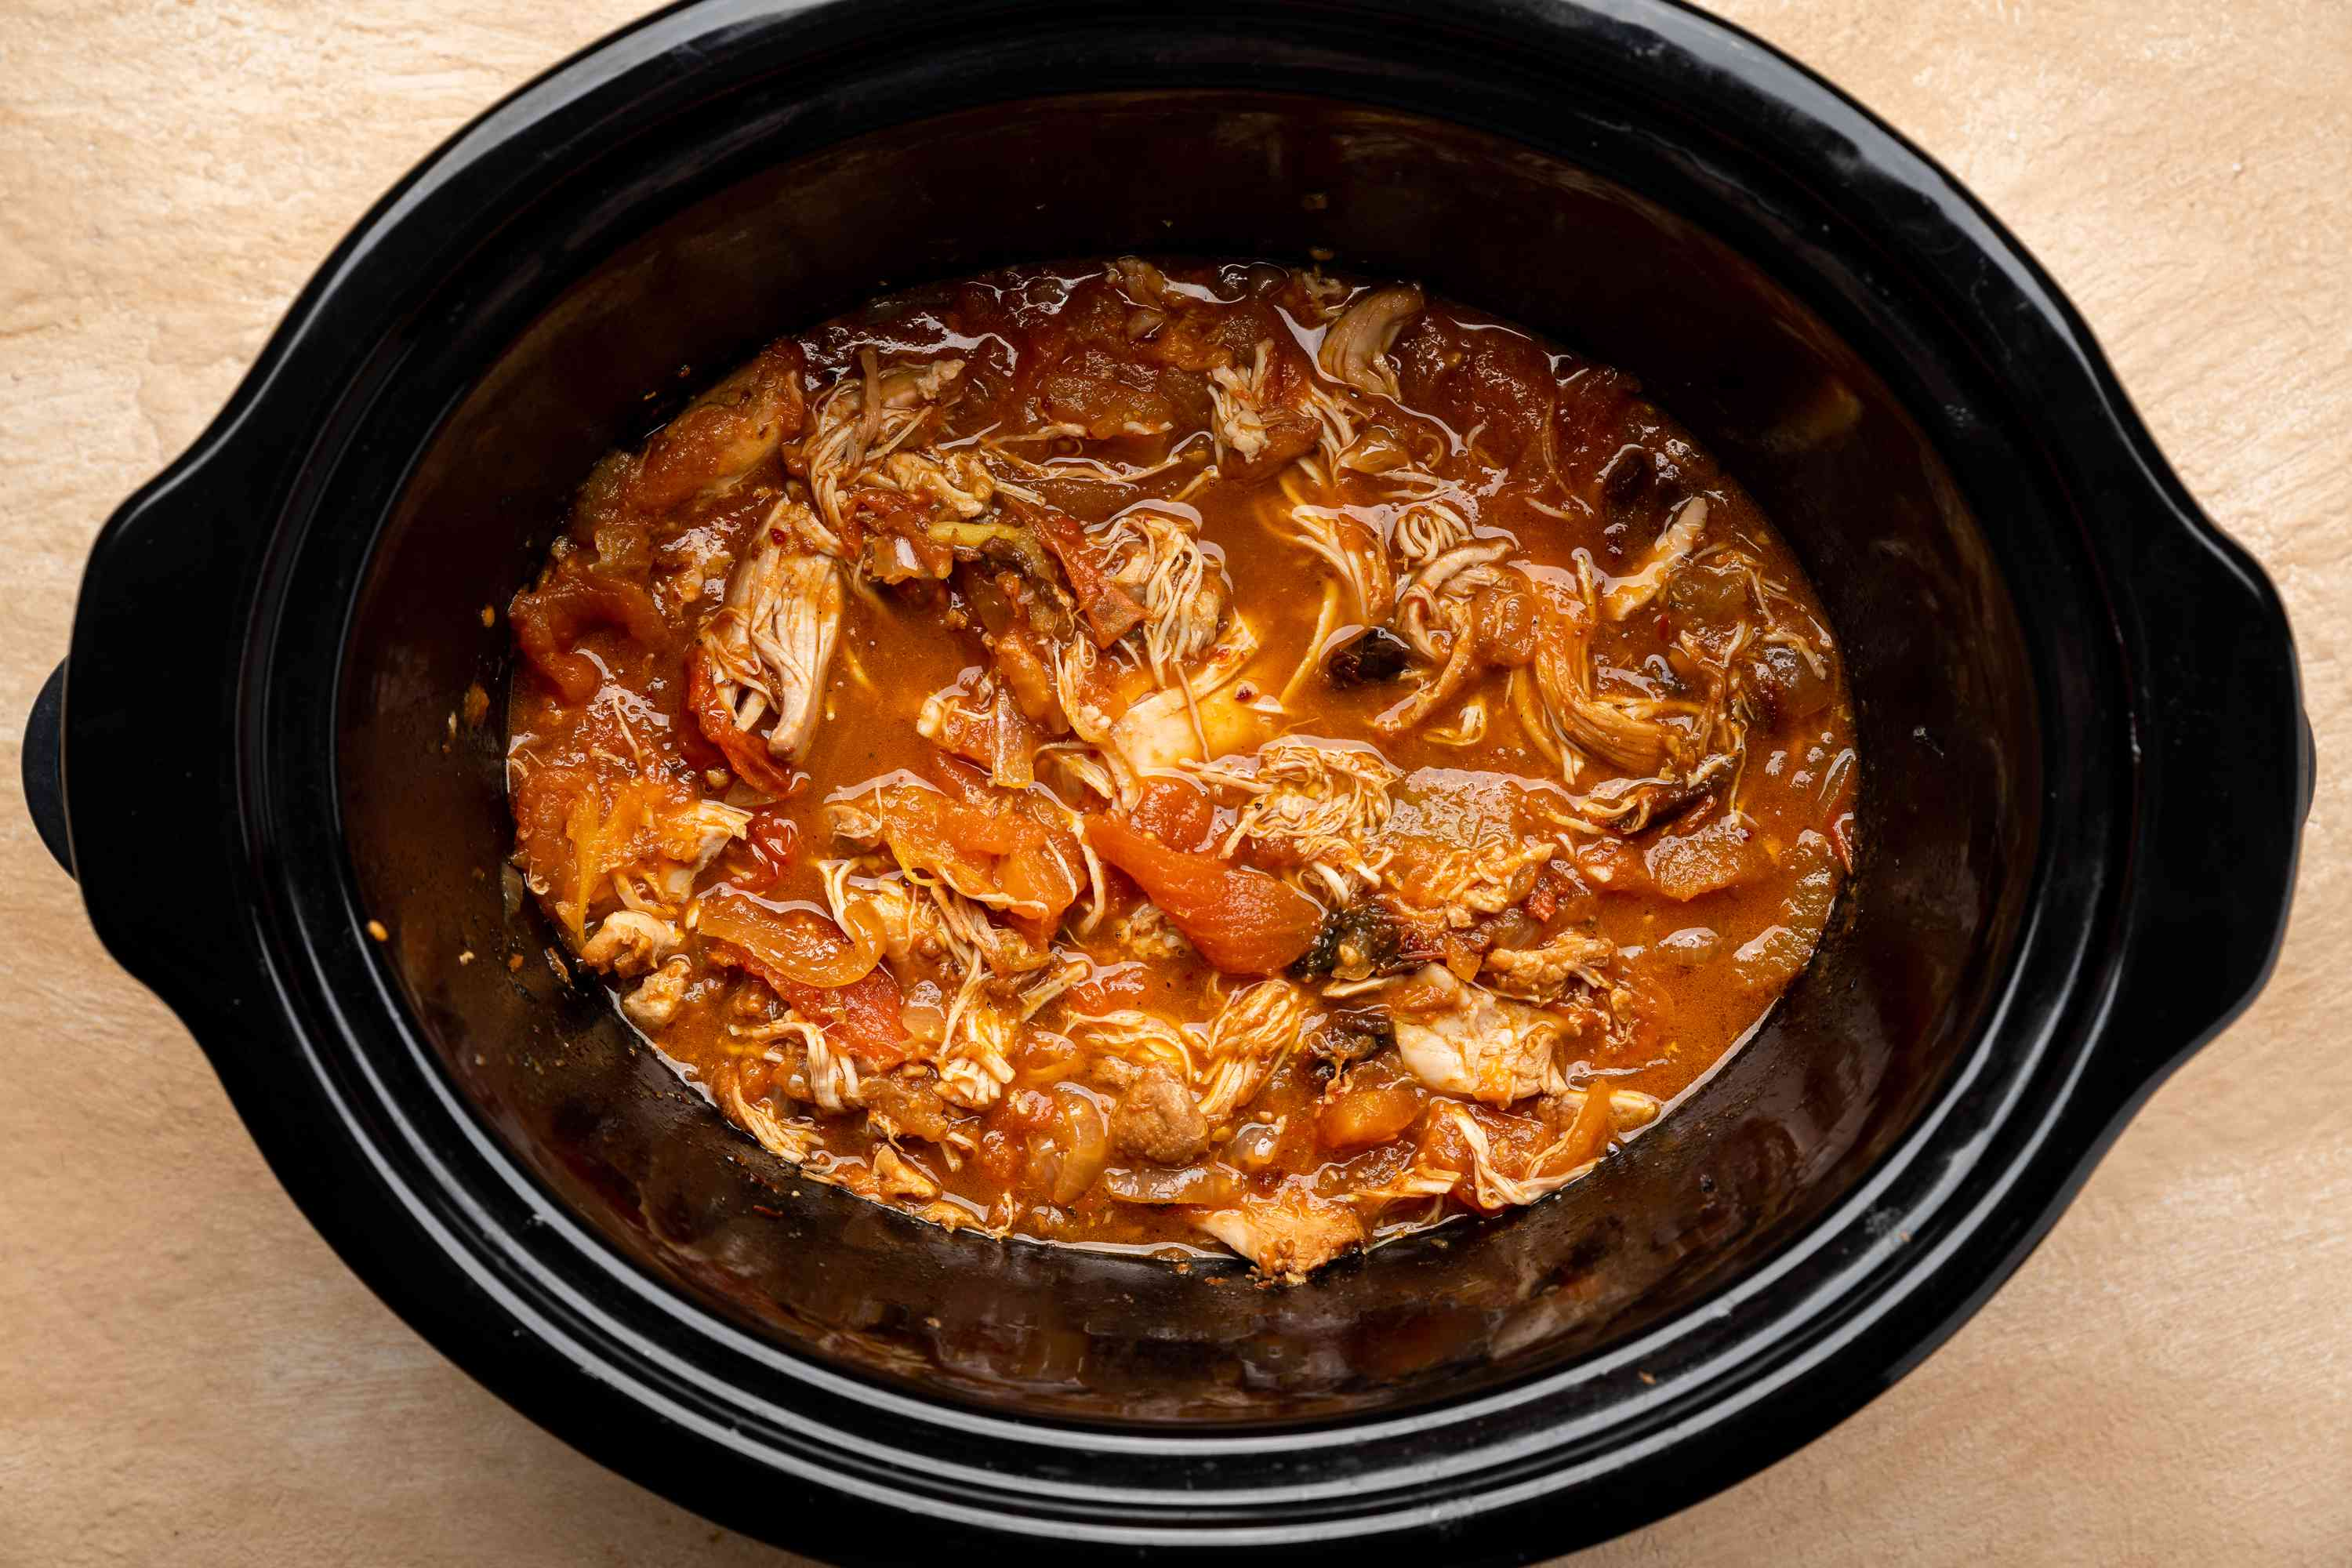 chicken shredded with sauce in crockpot